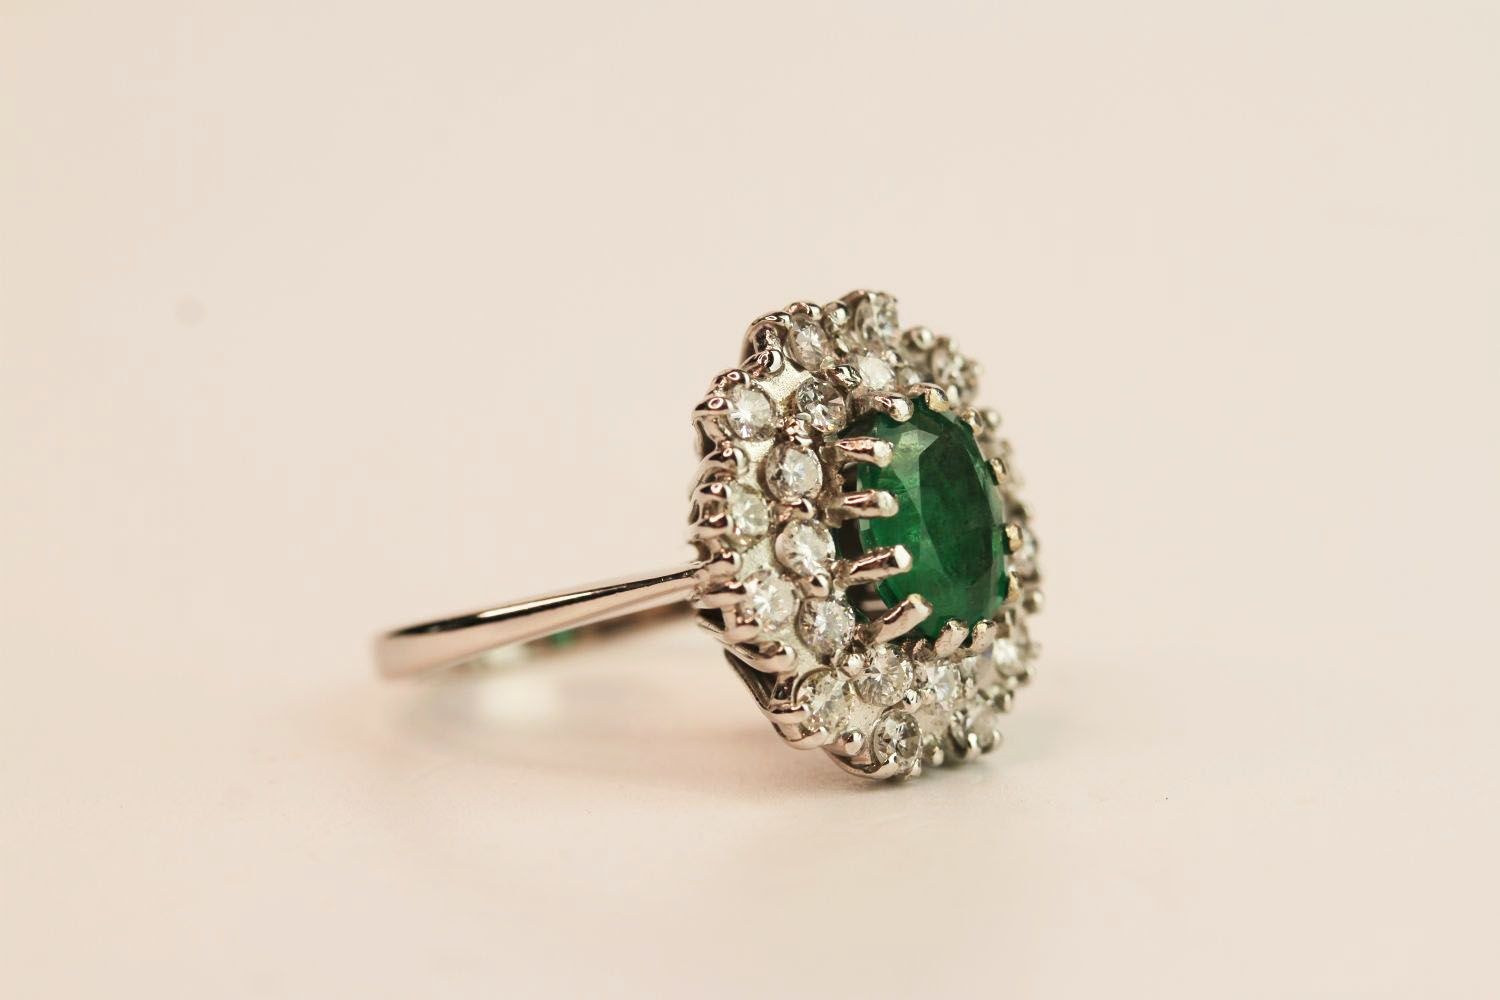 Emerald & Diamond Dress Ring, estimated 1.00ct oval cut emerald, claw set, 18ct white gold, - Image 2 of 3